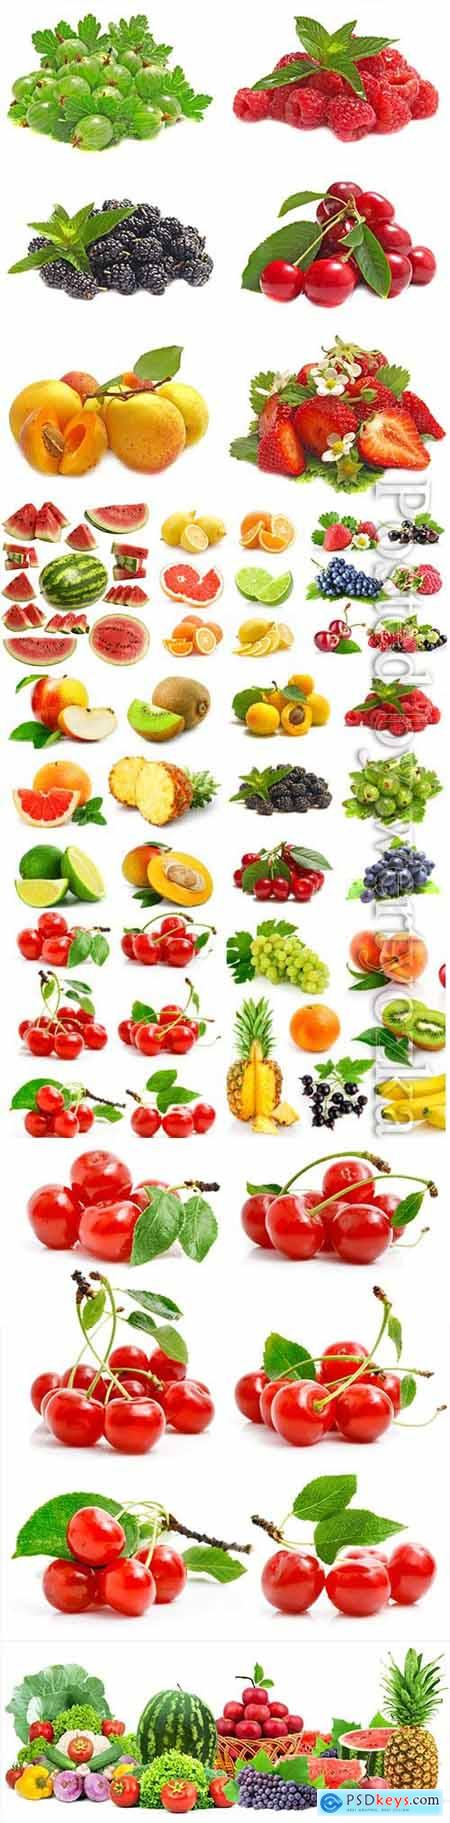 Tropical fruits, berries stock photo